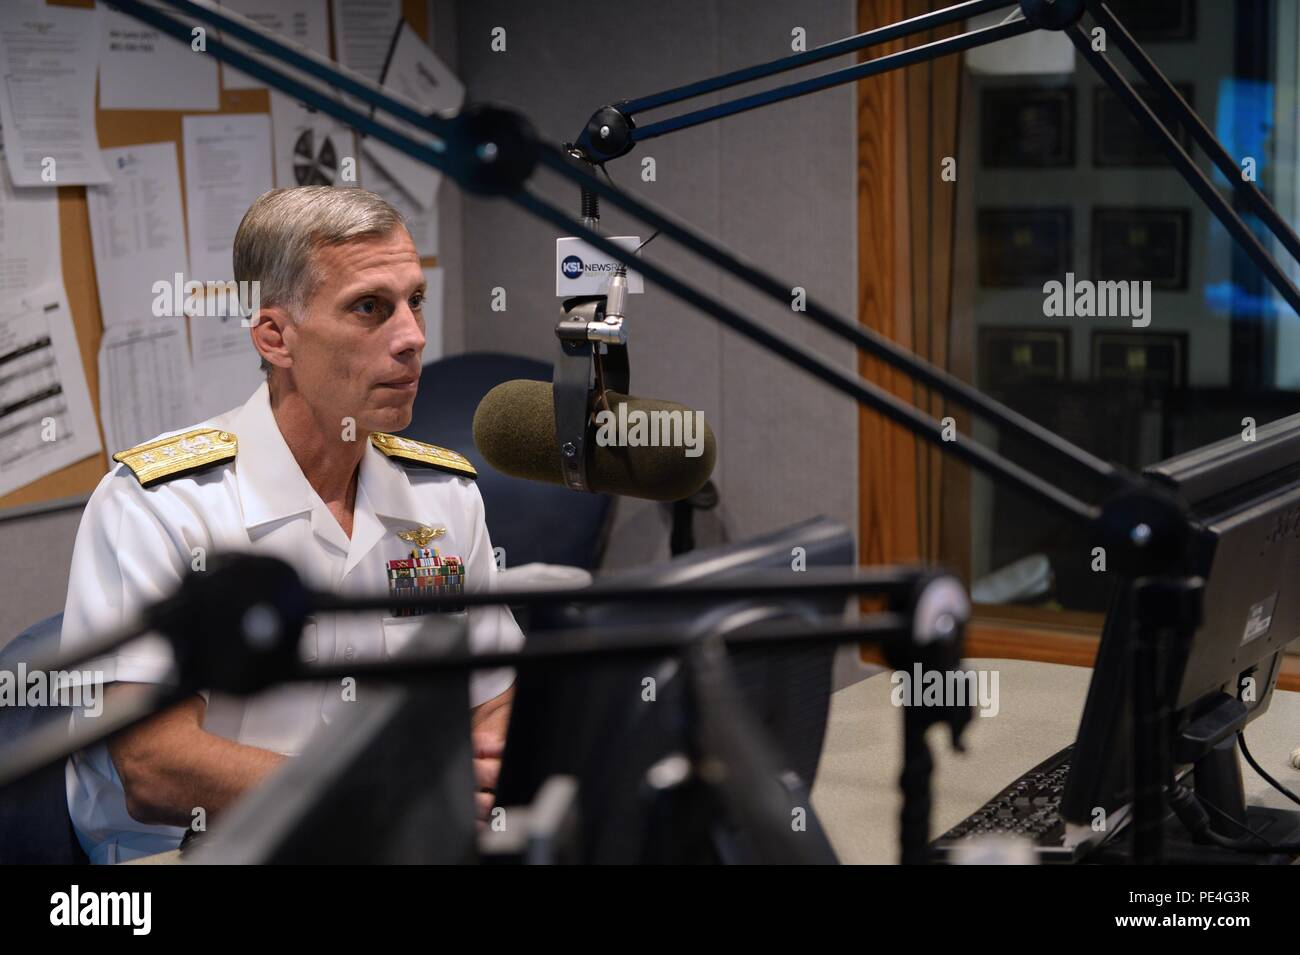 150909-N-RX128-012 SALT LAKE CITY, Utah (Sept. 9, 2015) – RADM Rick Snyder talks to Doug Wright during an interview on the Doug Wright radio show that airs in Salt Lake City. This event is part of the Salt Lake City Navy Week. (U.S. Navy photo by Mass Communication Specialist 3rd Class Nathan J. Lang) - Stock Image